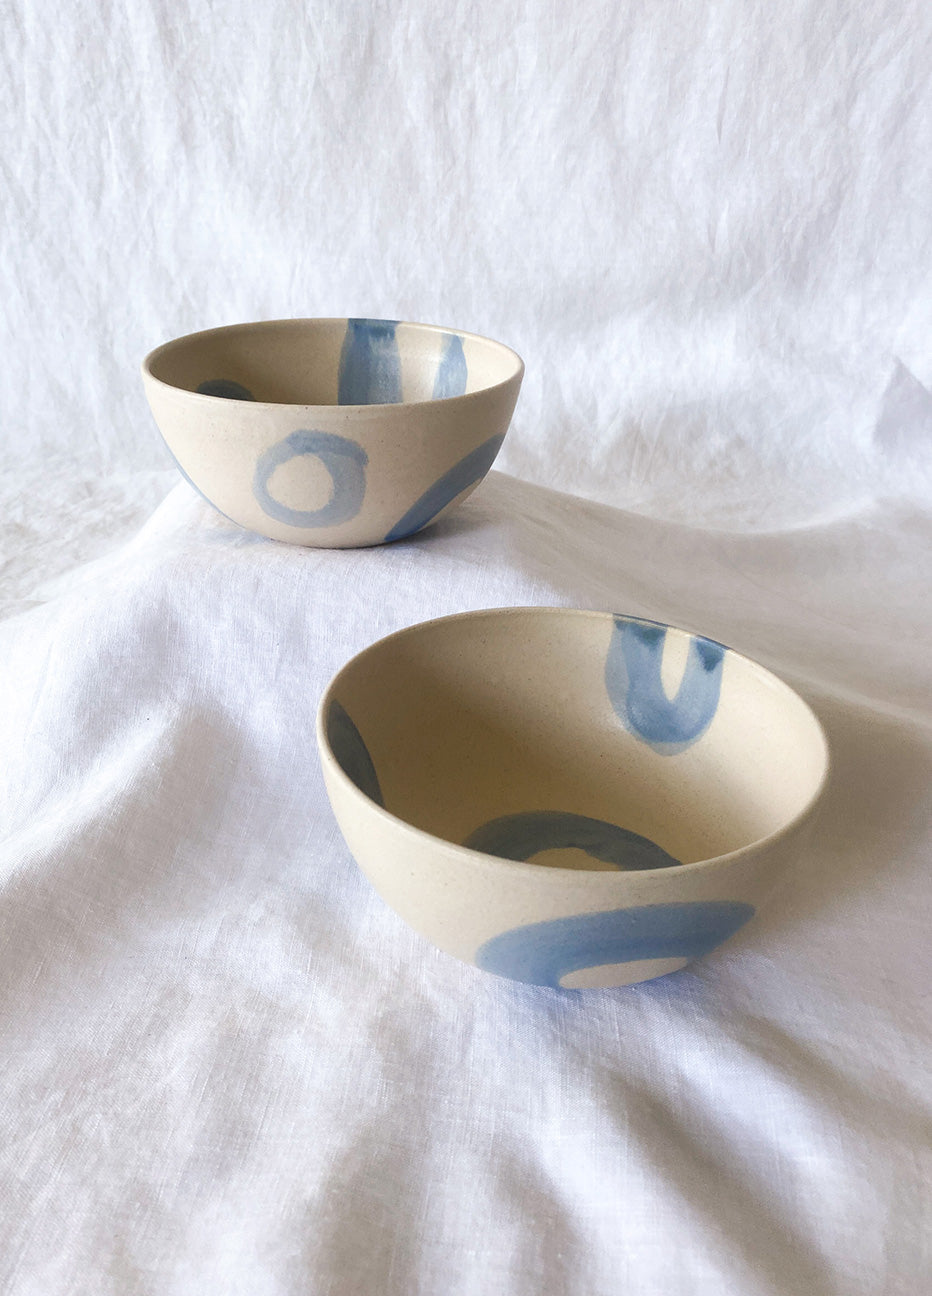 KVL Blue and White Cereal Bowl